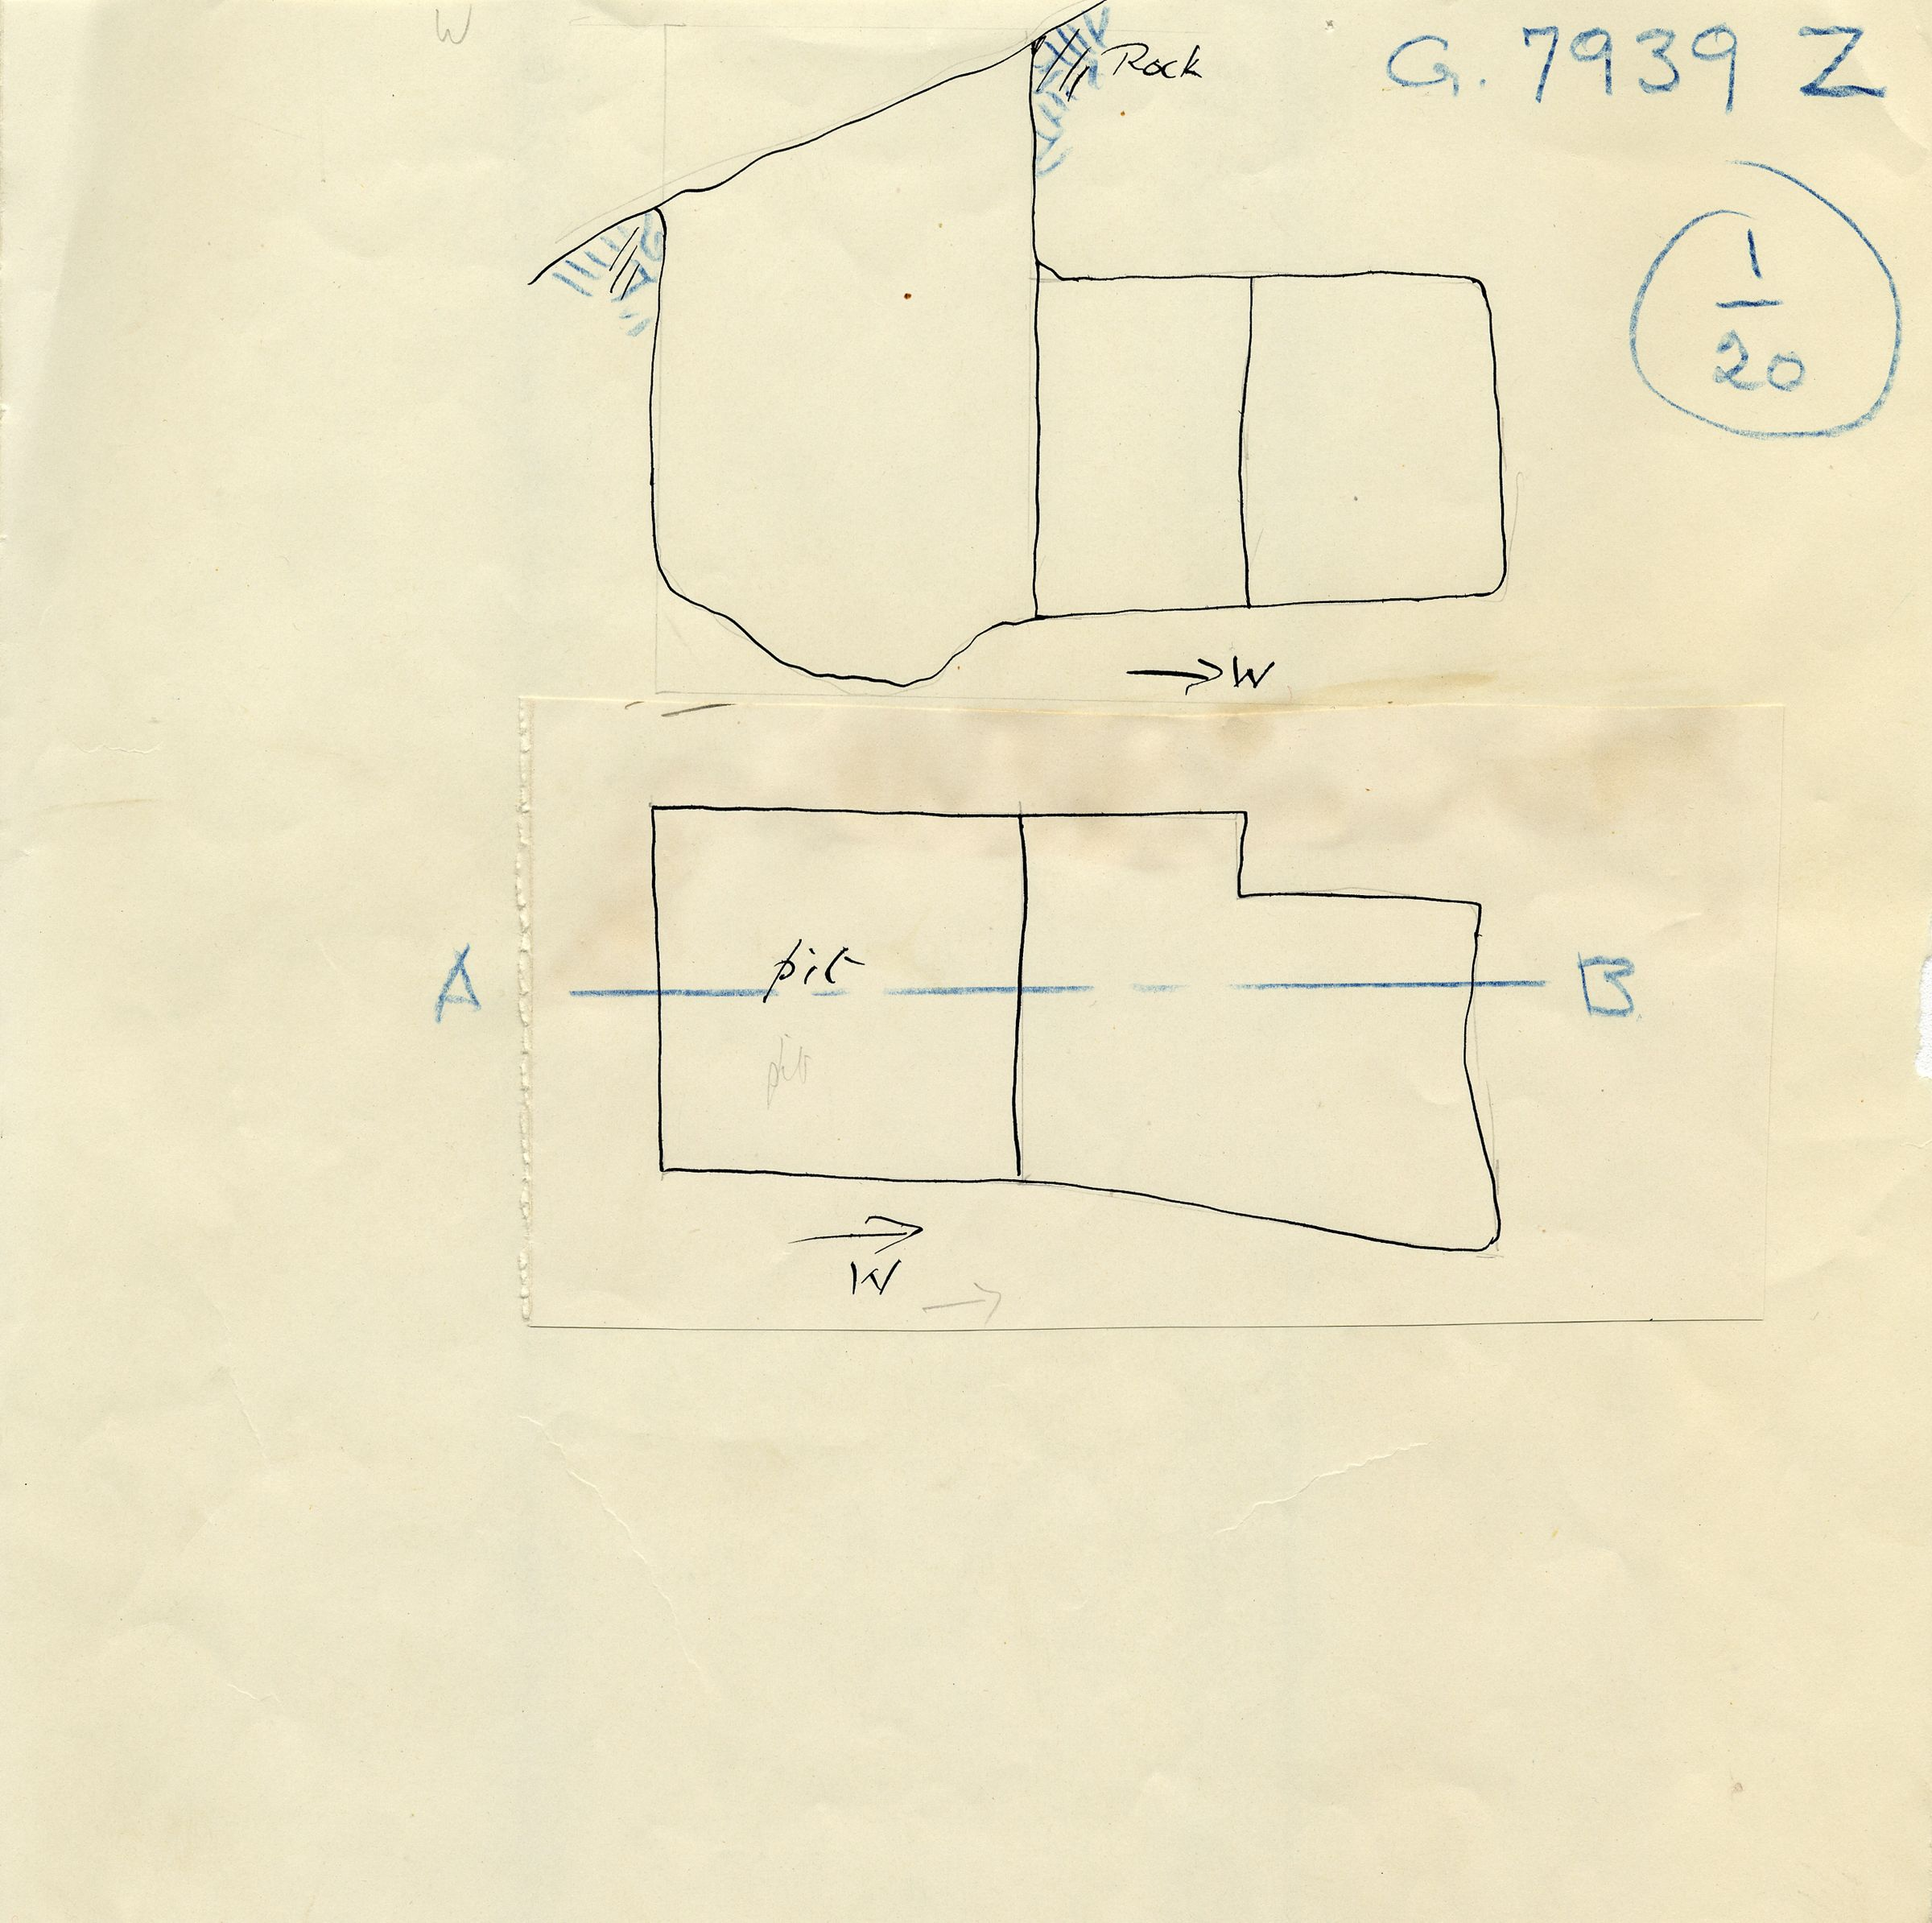 Maps and plans: G 7939, Shaft Z